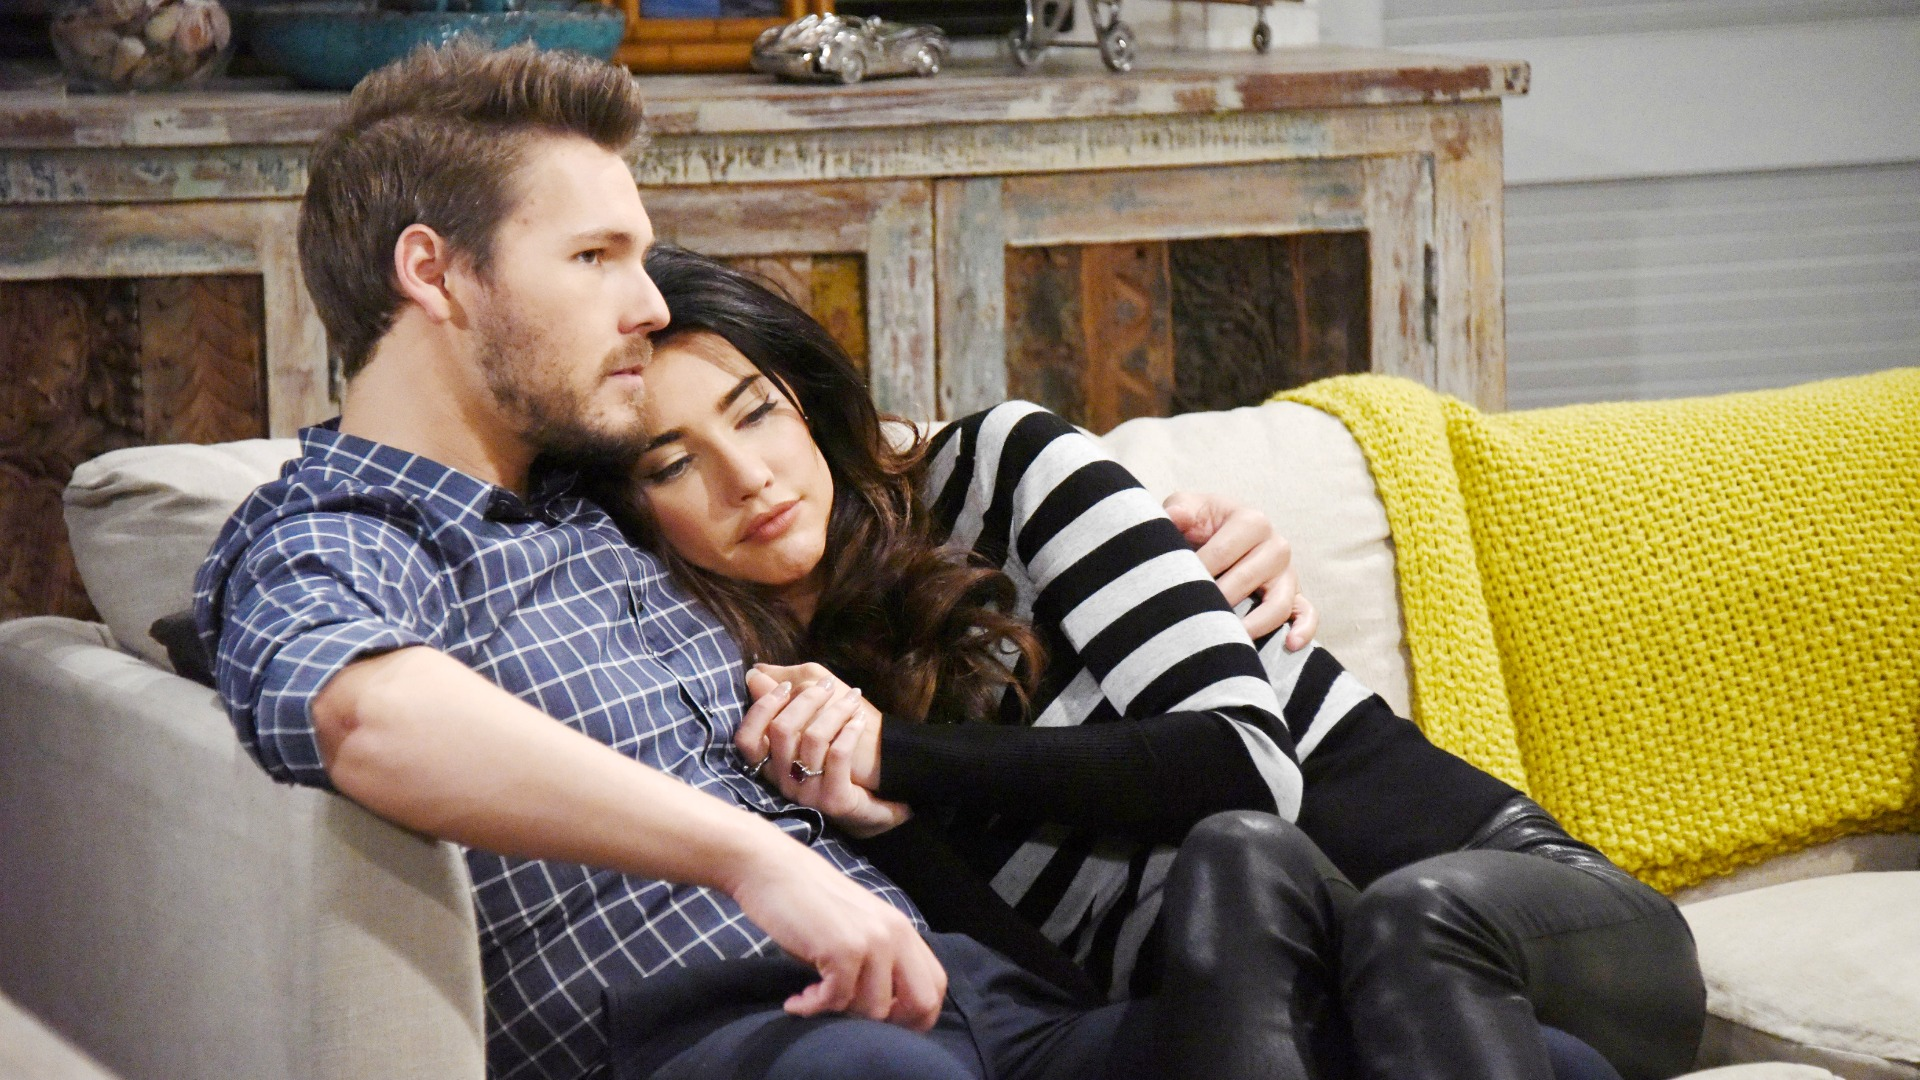 Liam and Steffy get the chance to act on their feelings for each other. Will they?